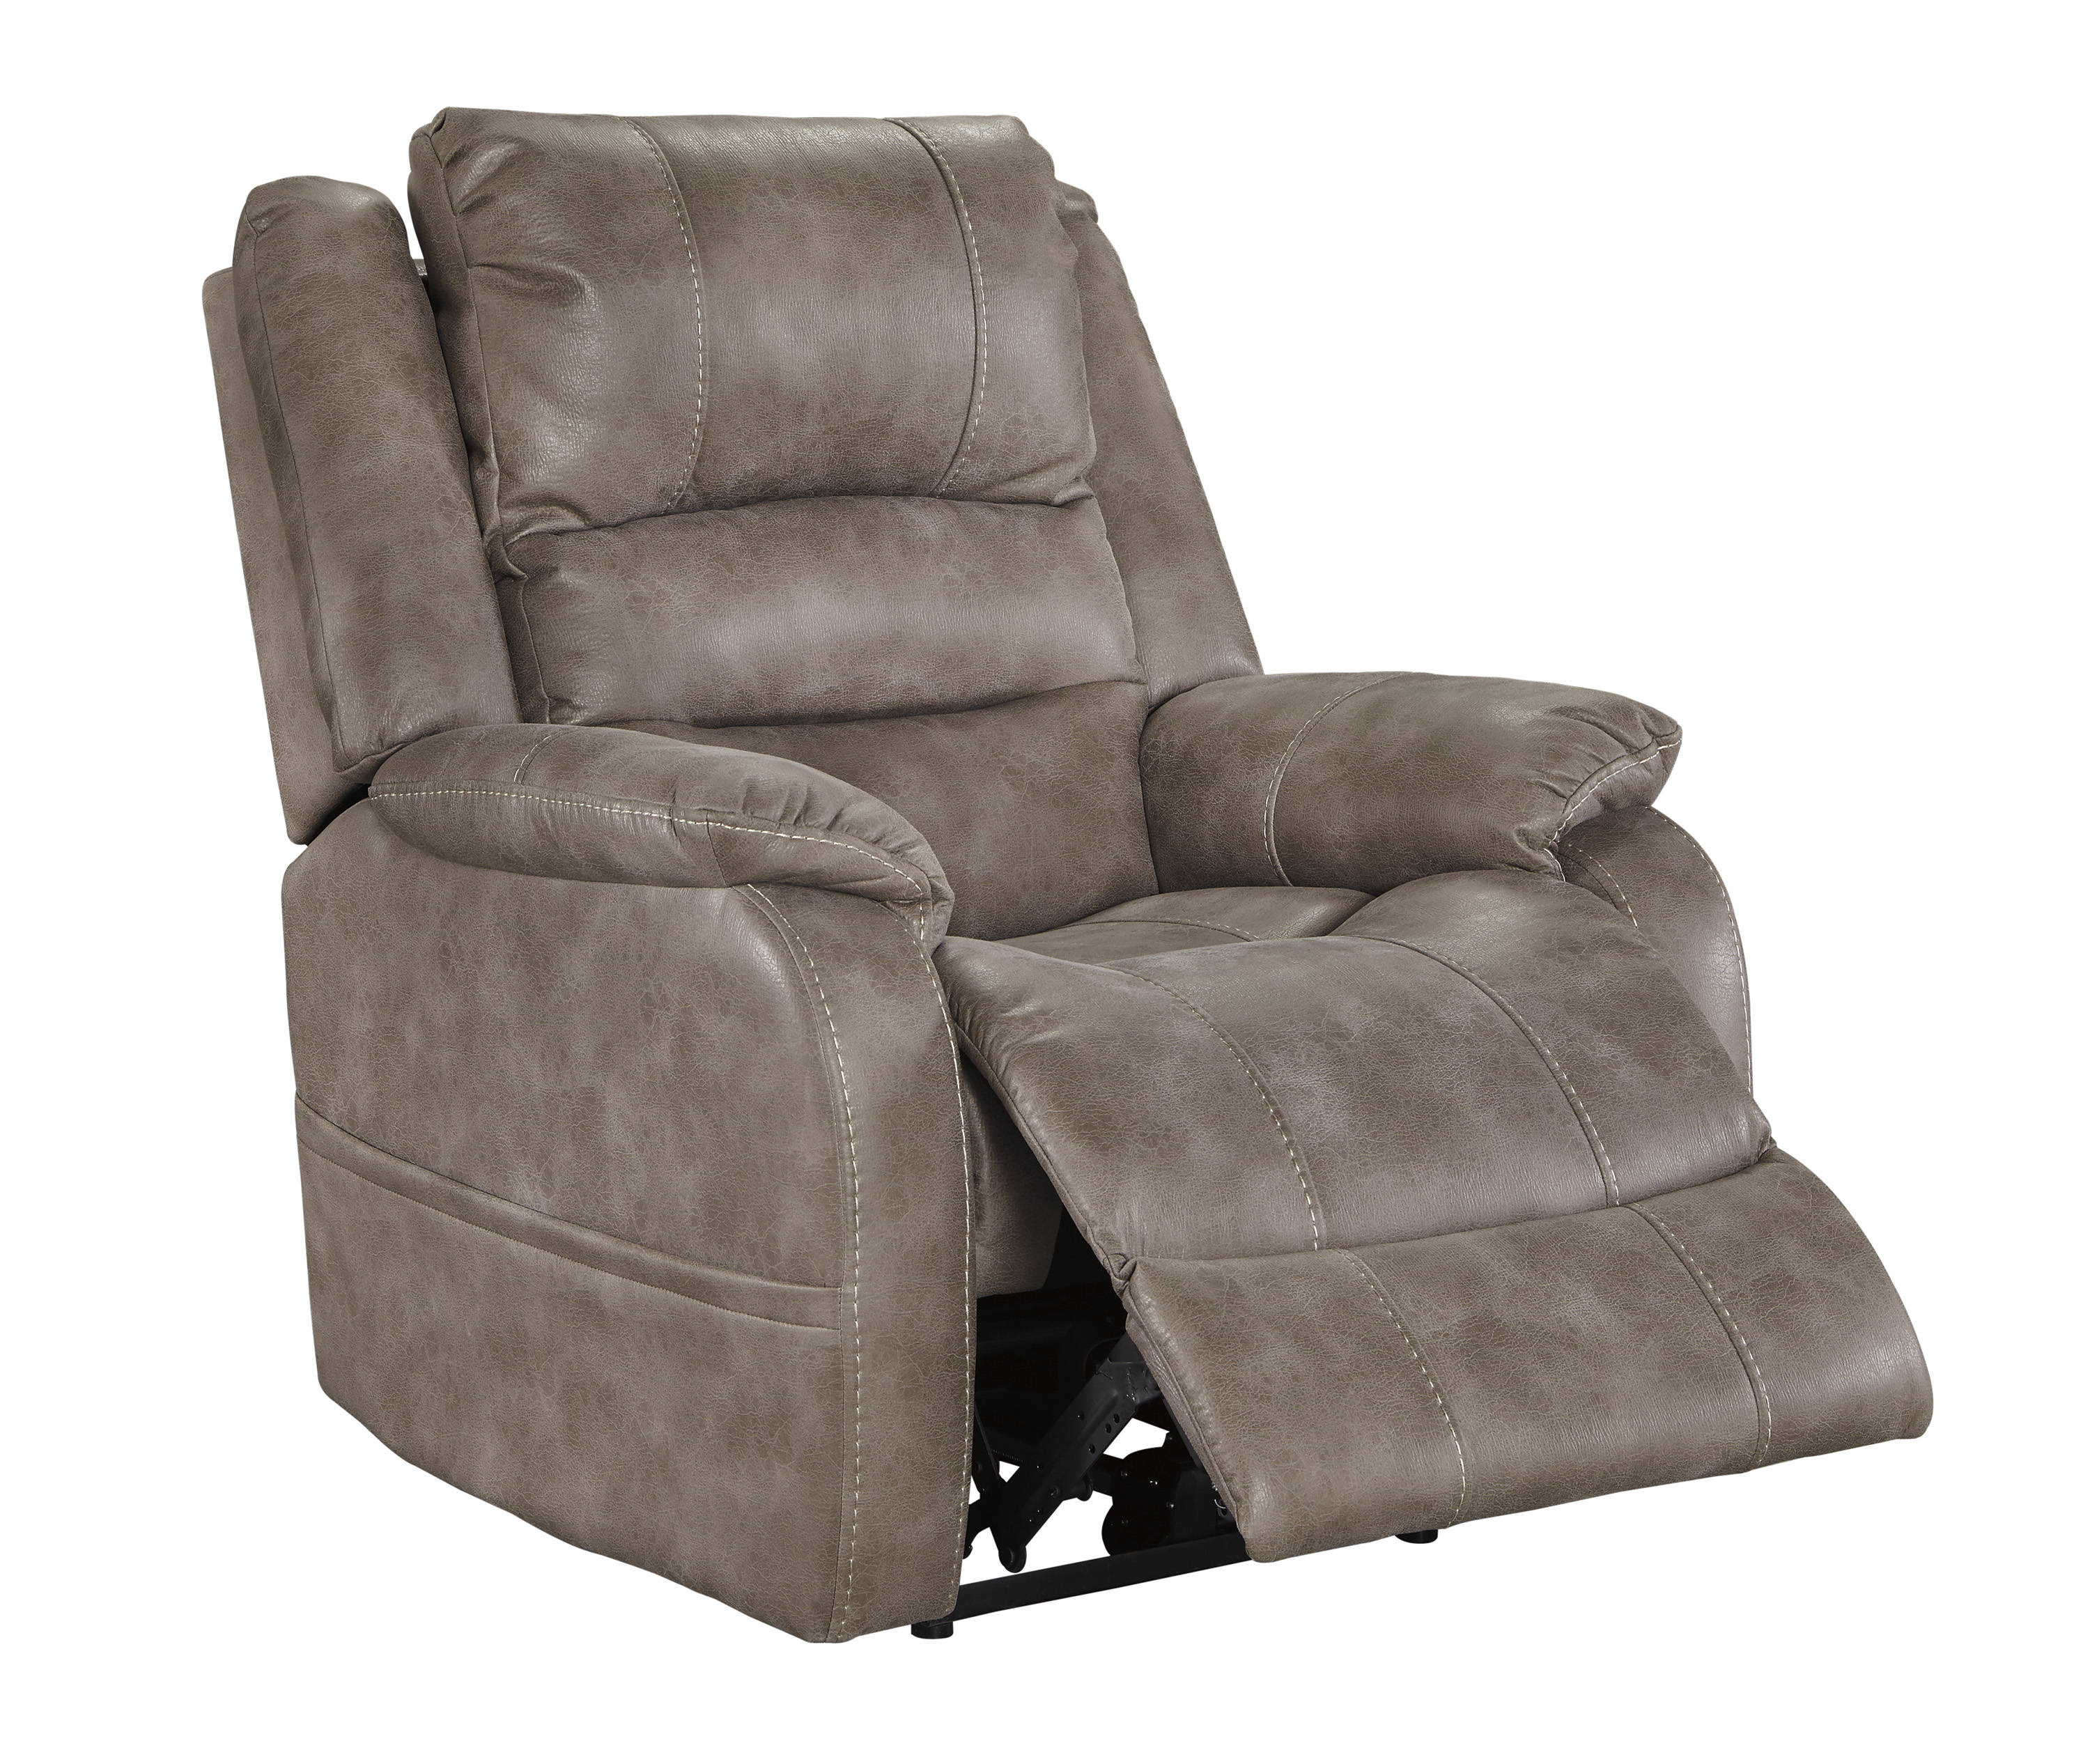 Ashley Furniture Barling Mushroom Adjustable Headrest Power Recliner The Classy Home